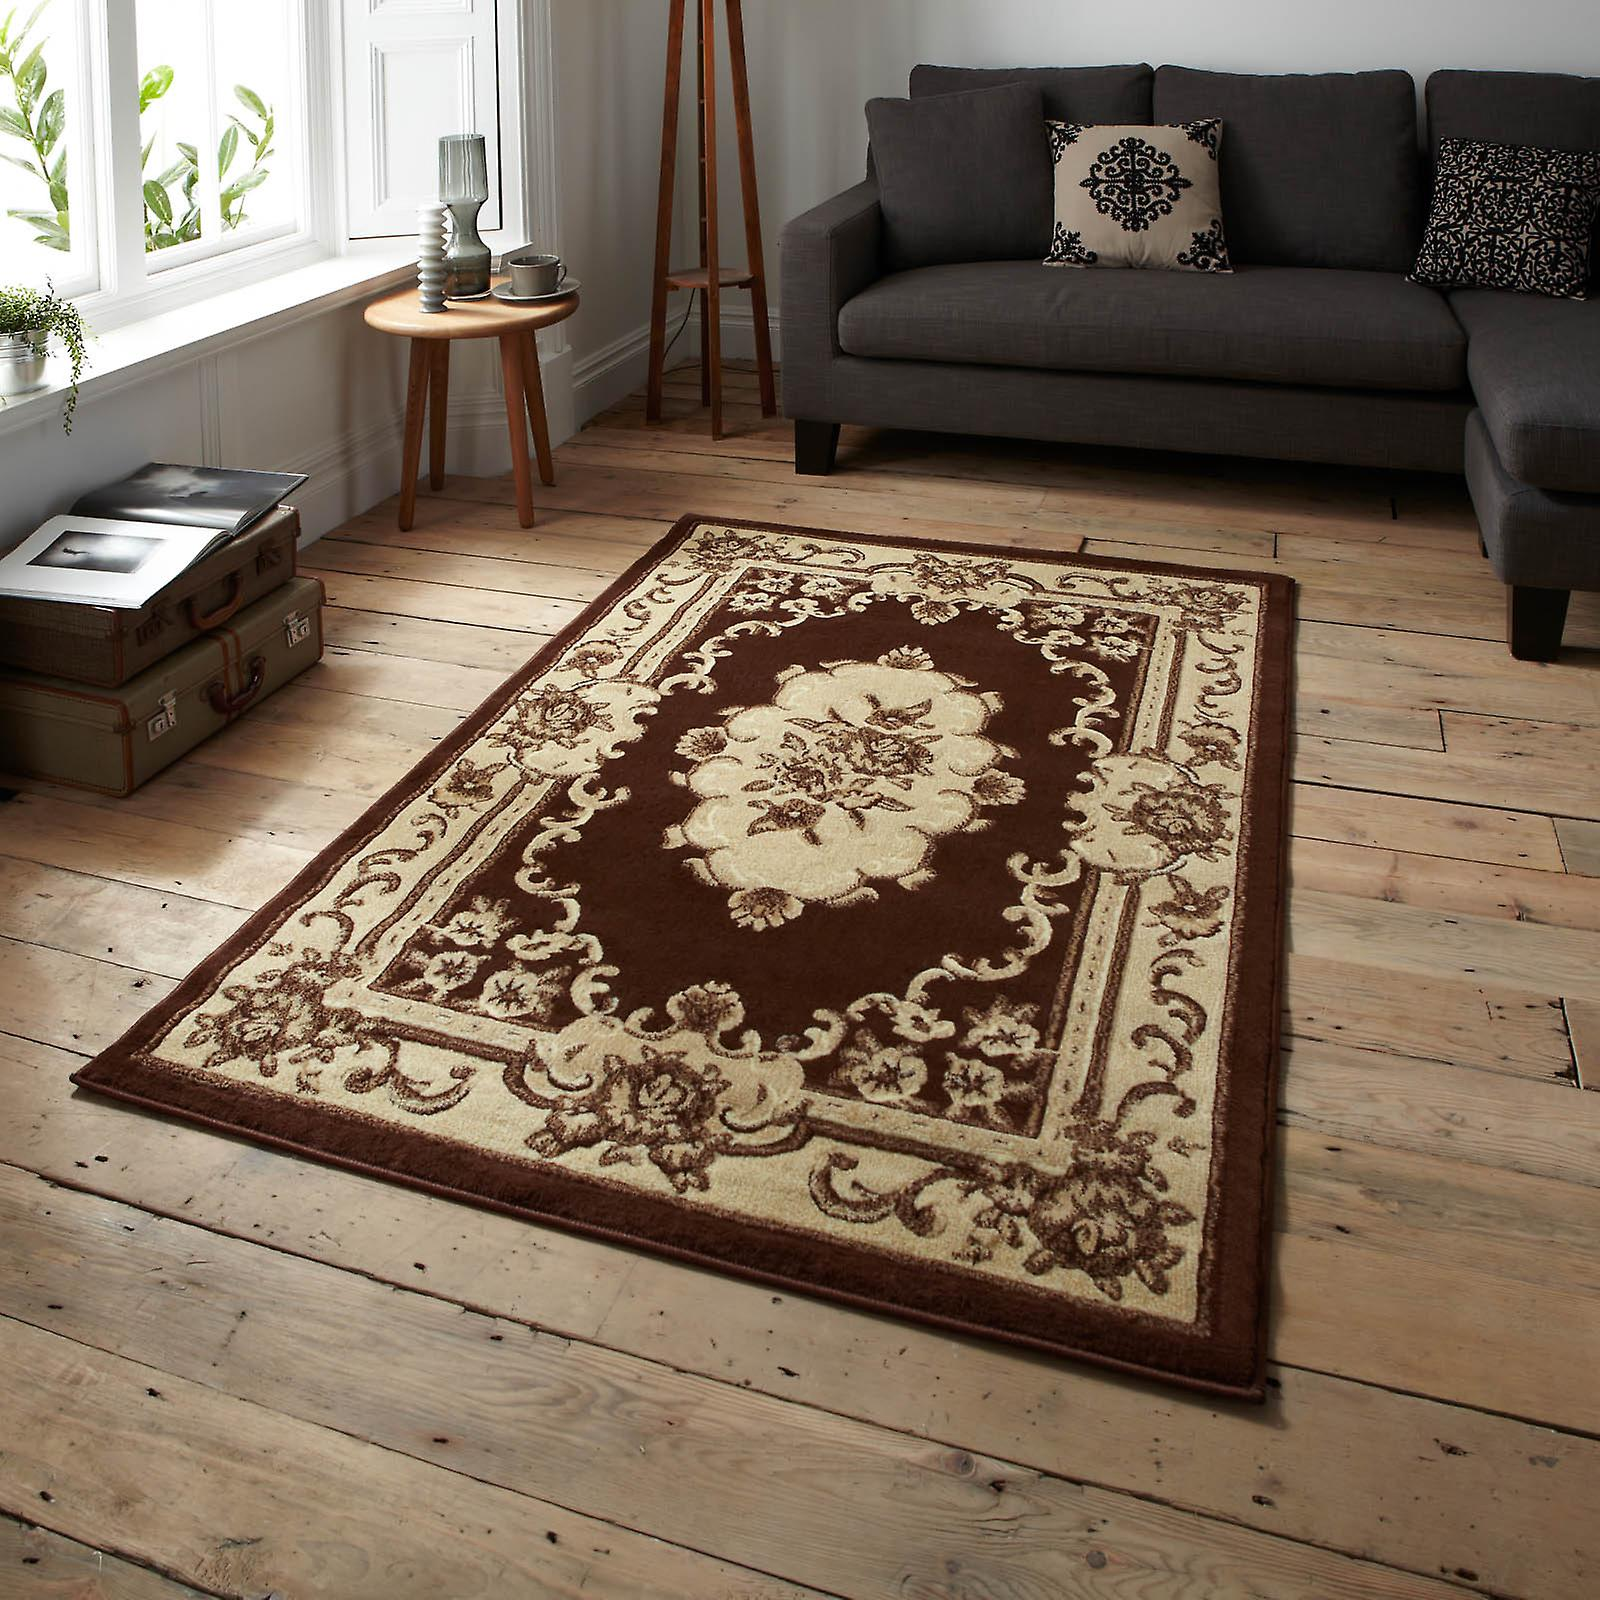 Marrakesh Rugs In Brown